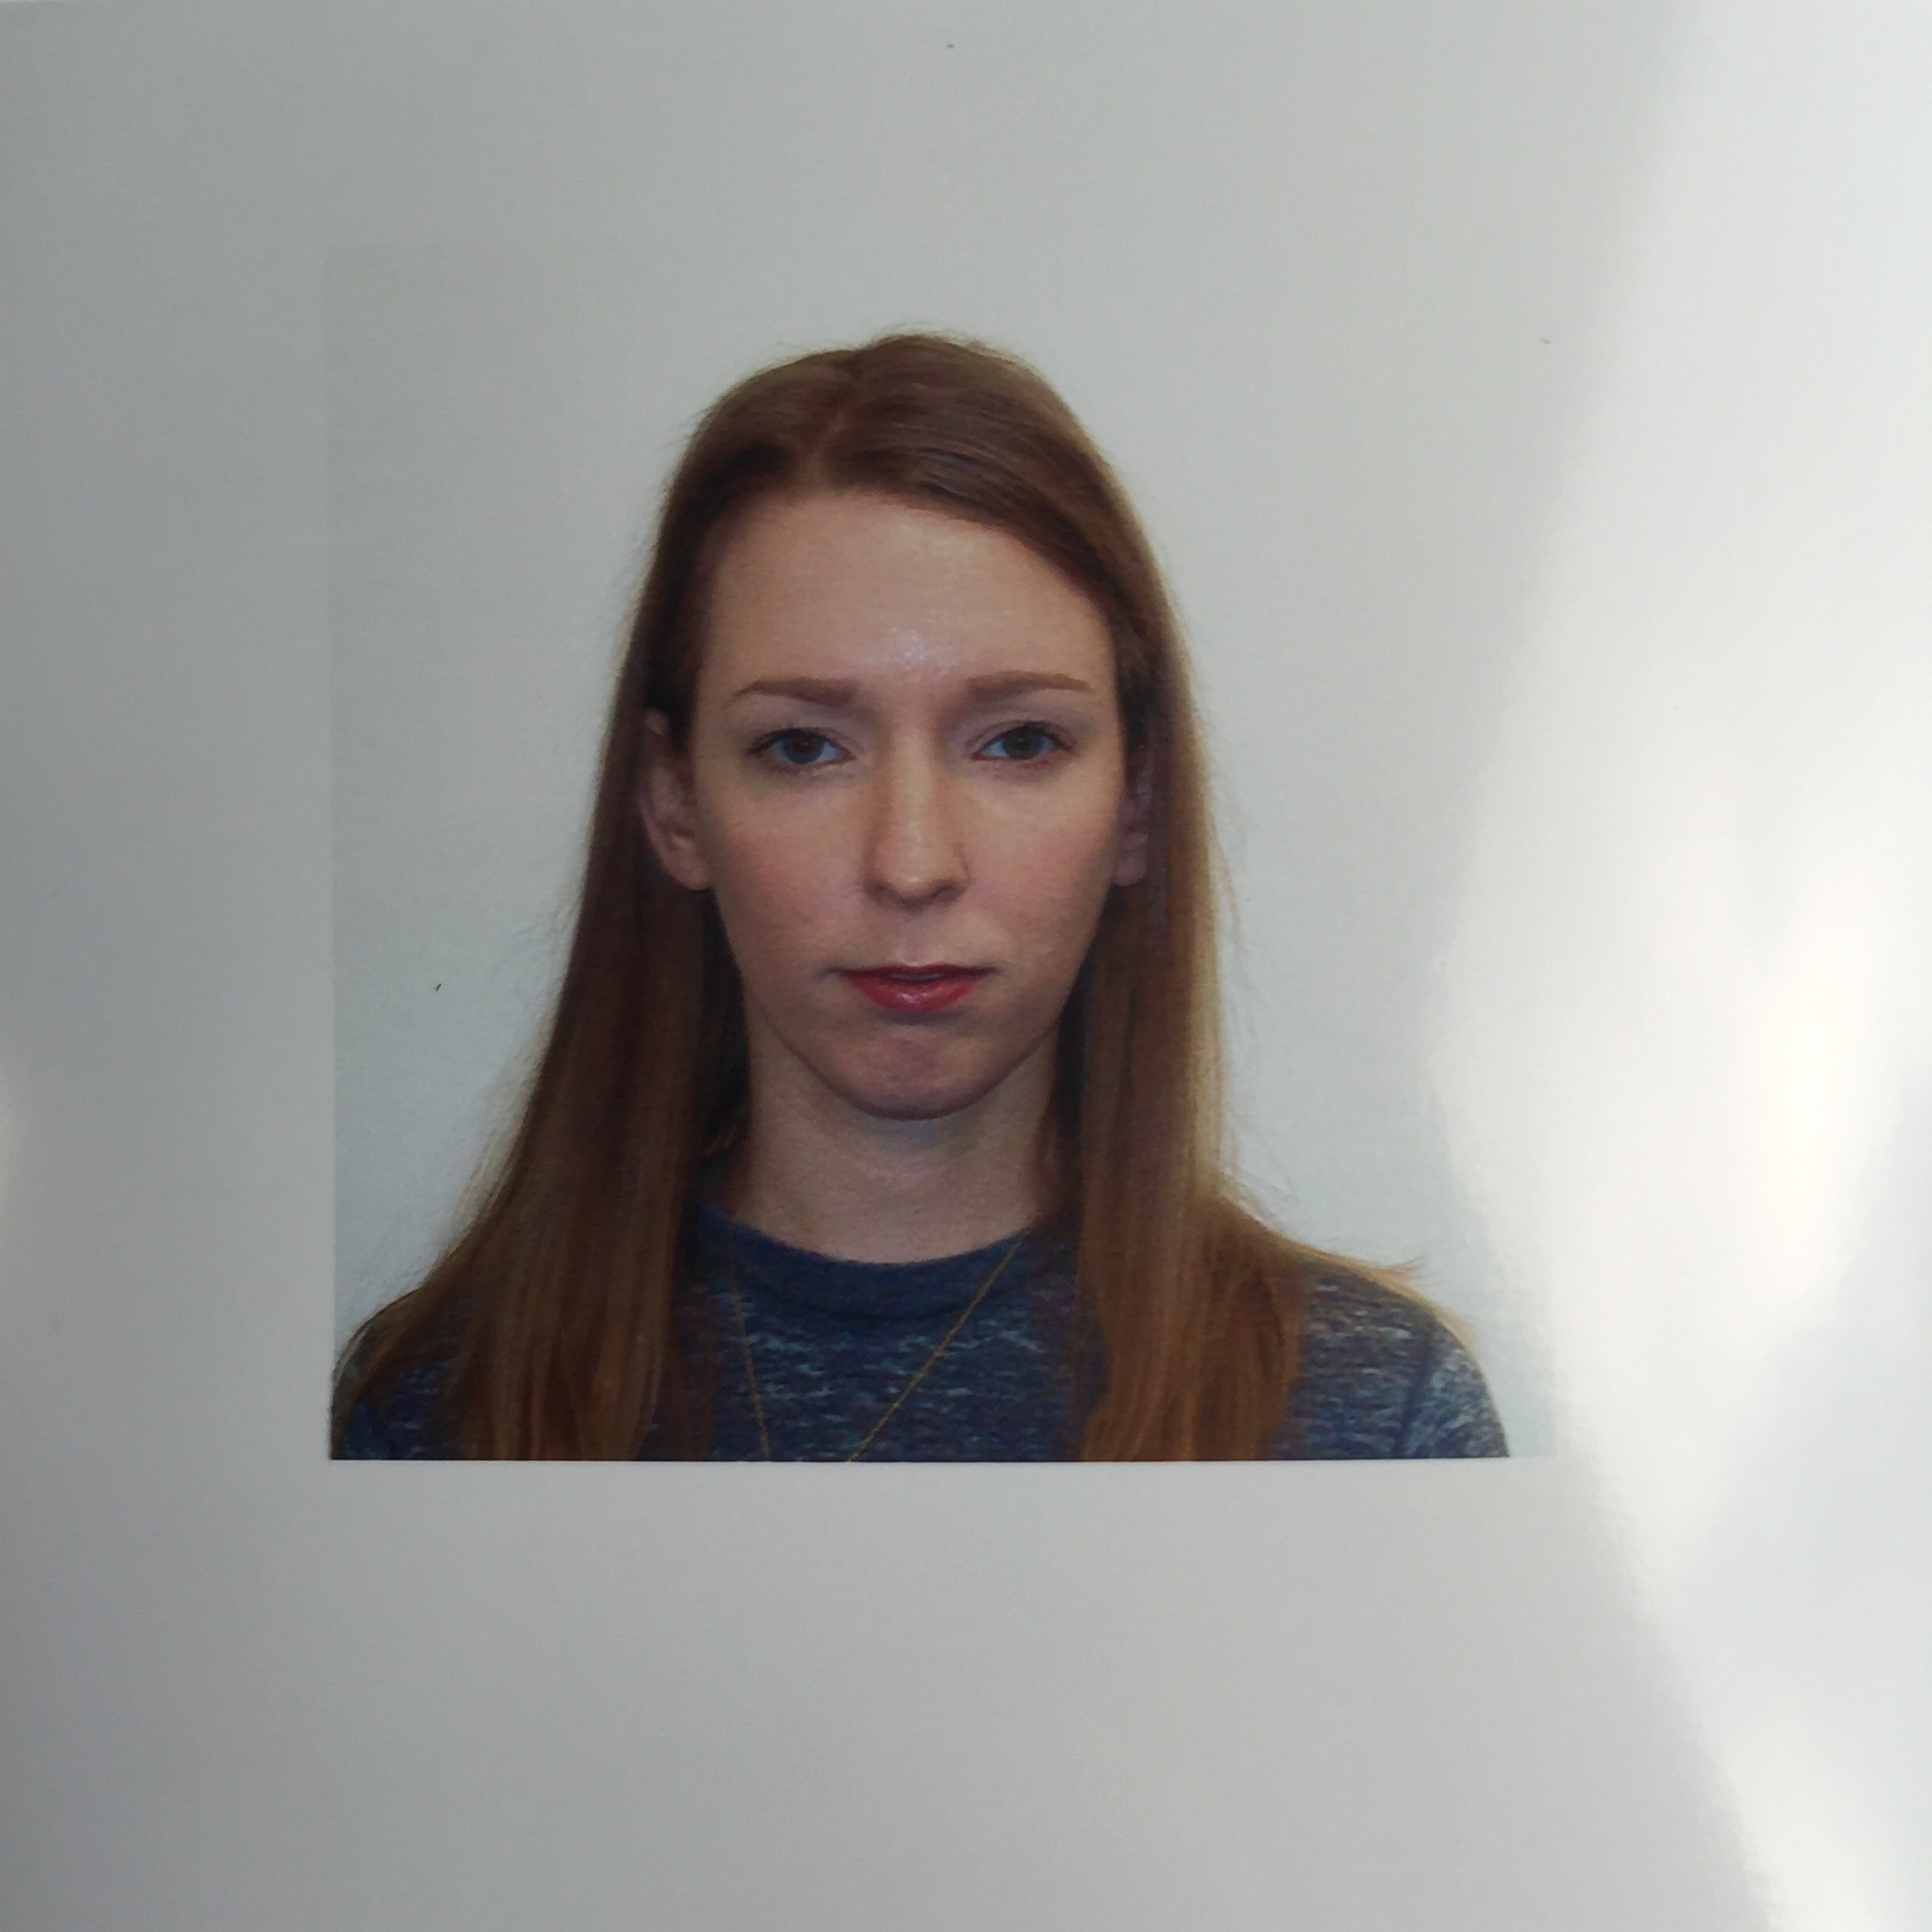 I finally got my passport application turned in, and this is the unfortunate photo that will follow me around the world for ten years